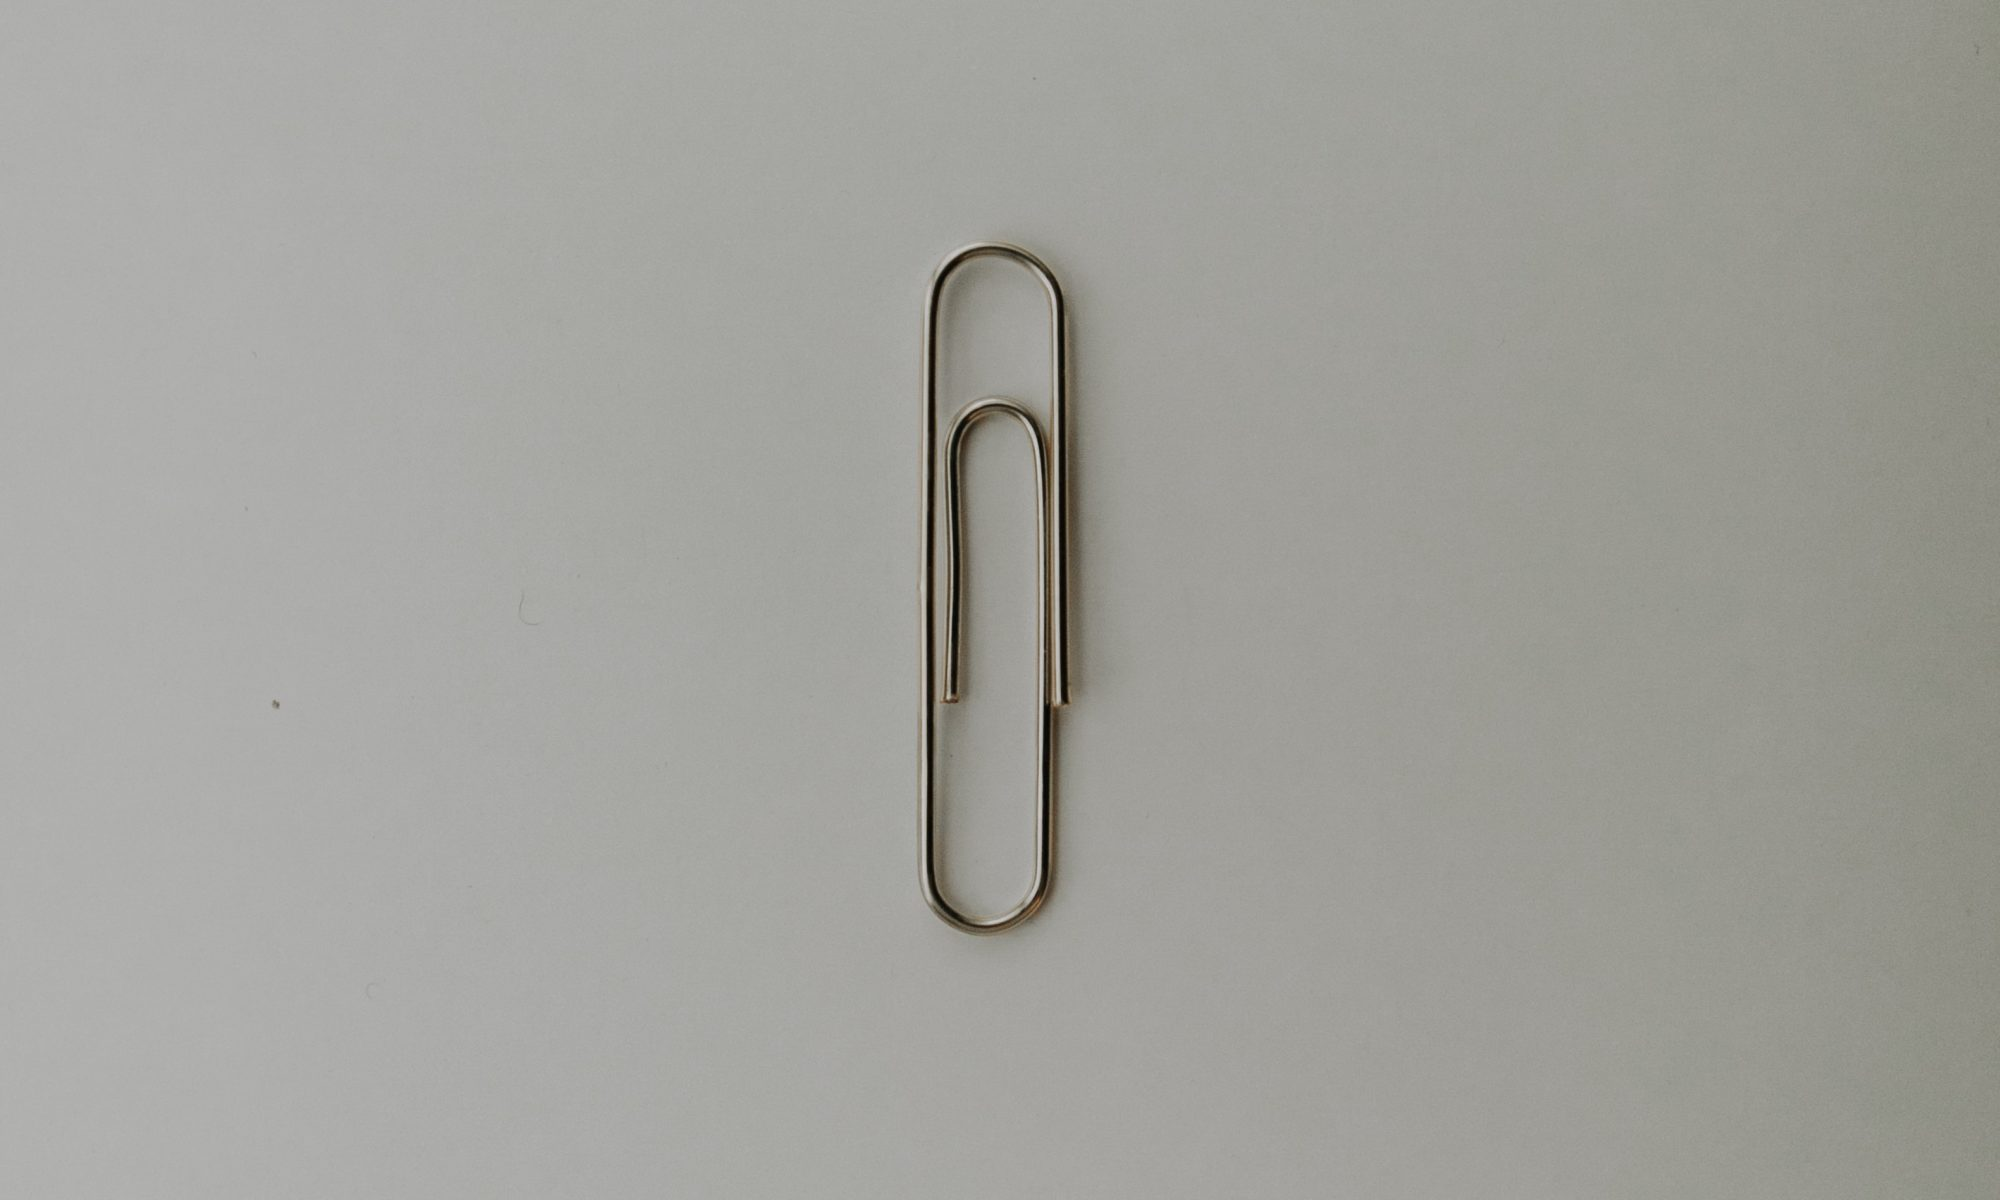 Photo of a paper clip; indicates simplicity